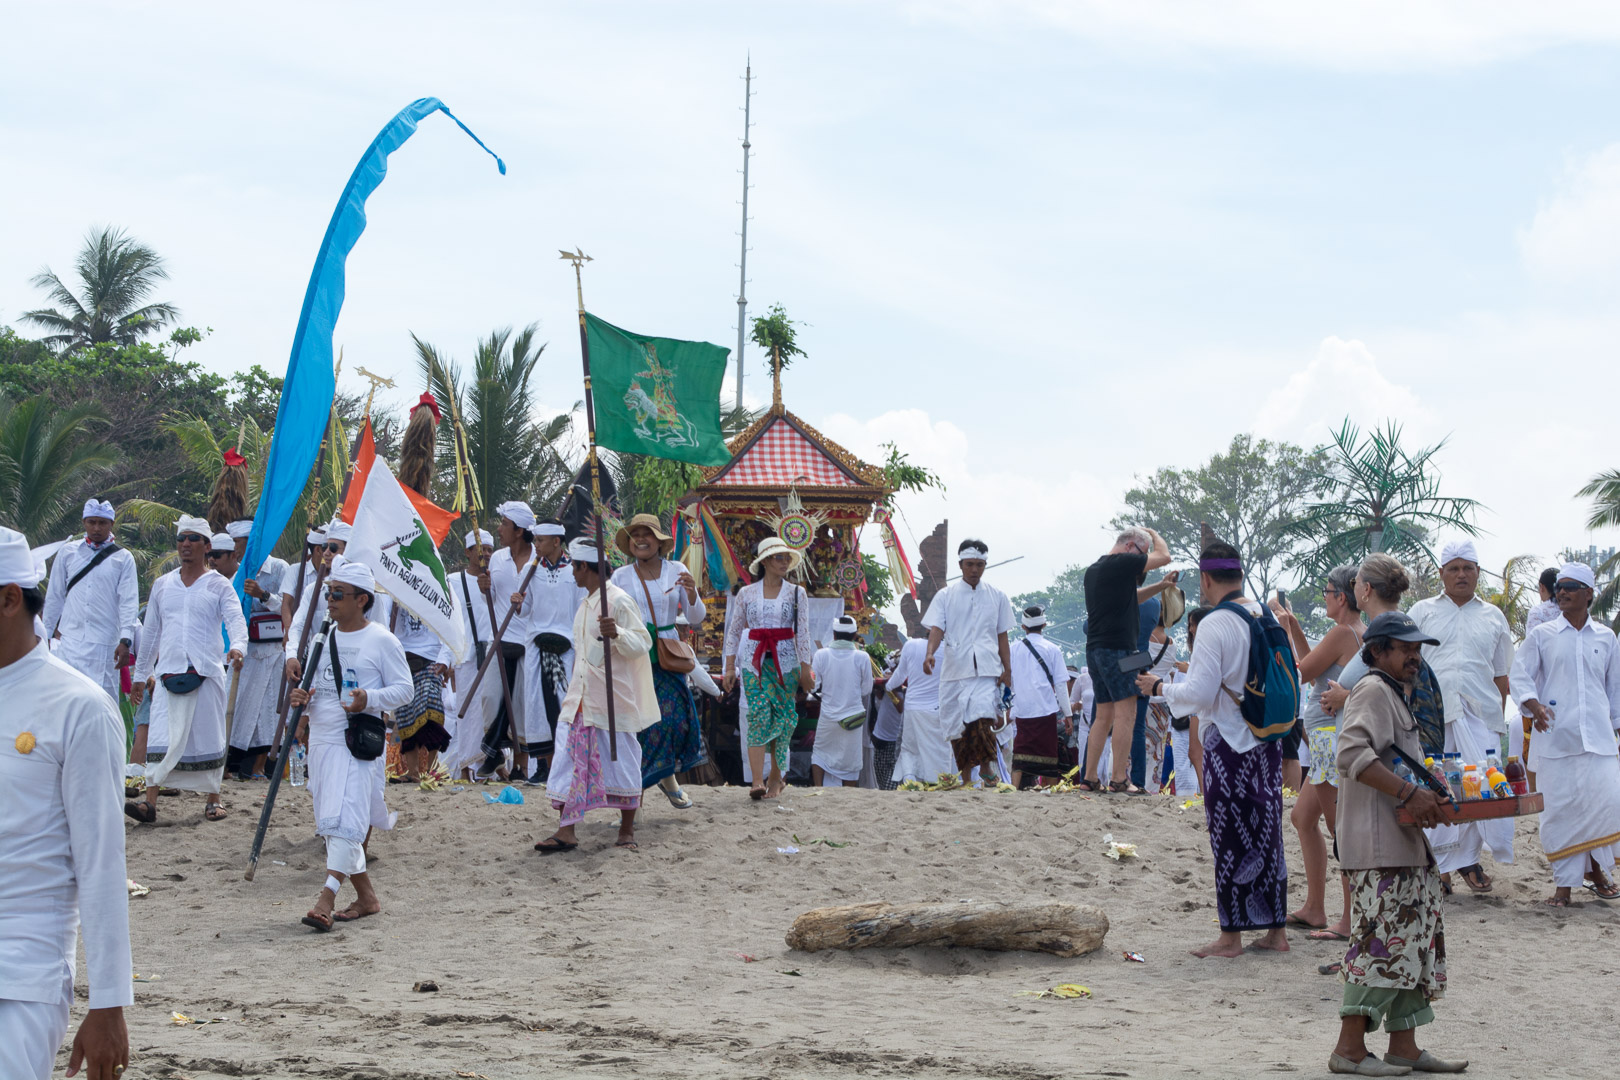 A temple's community making their way to the ocean for purification